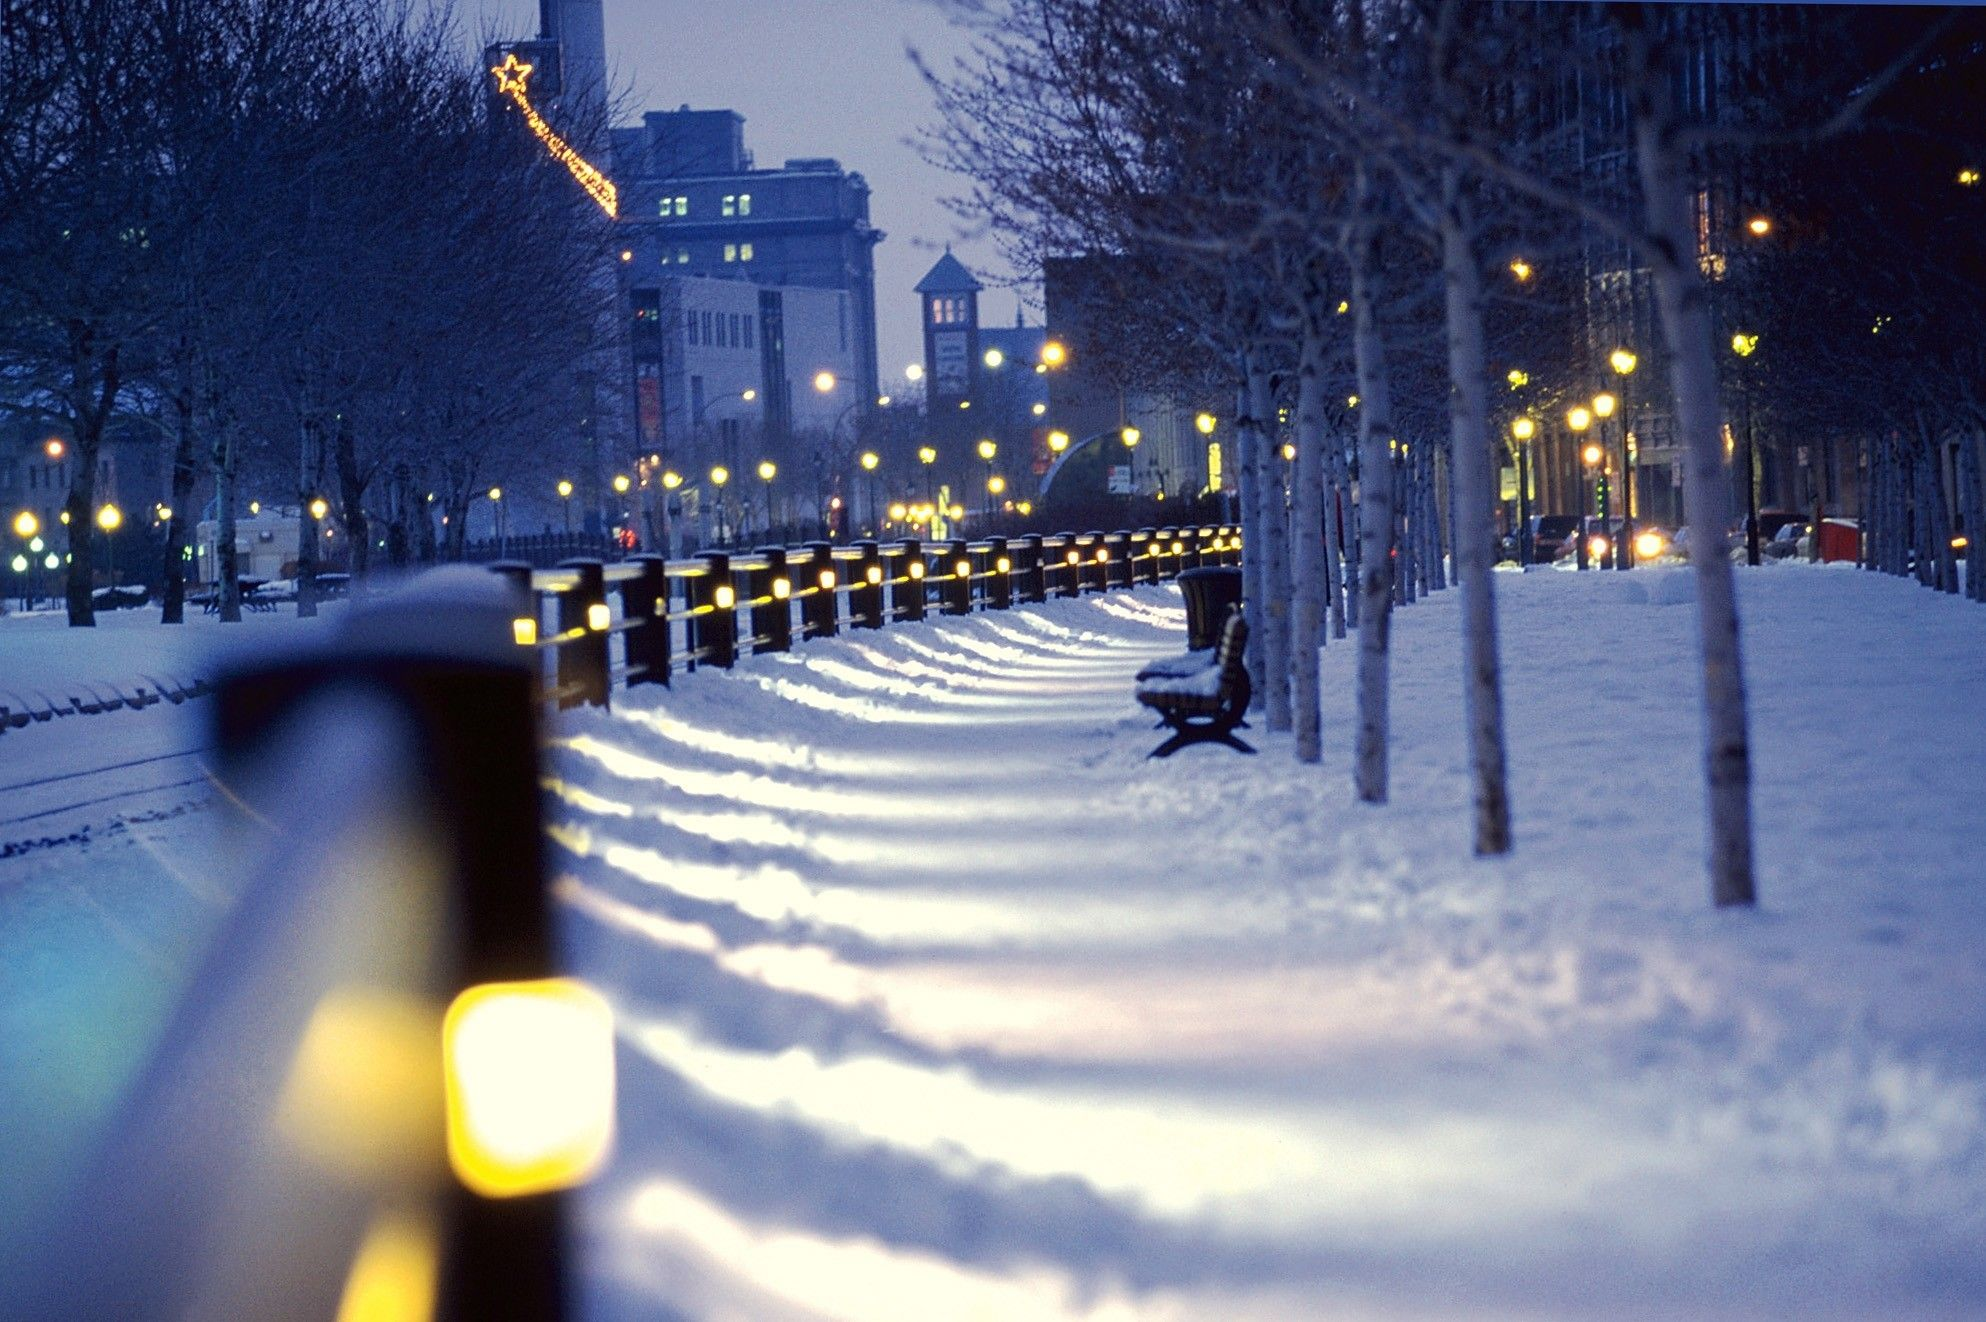 Path In The Park Full With Snow Hd Winter Wallpaper Misc Stuff Wallpapers Hd Wallpaper Download For Ipad And Iphone Widescreen 2160p Uhd 4k Hd 16 9 16 10